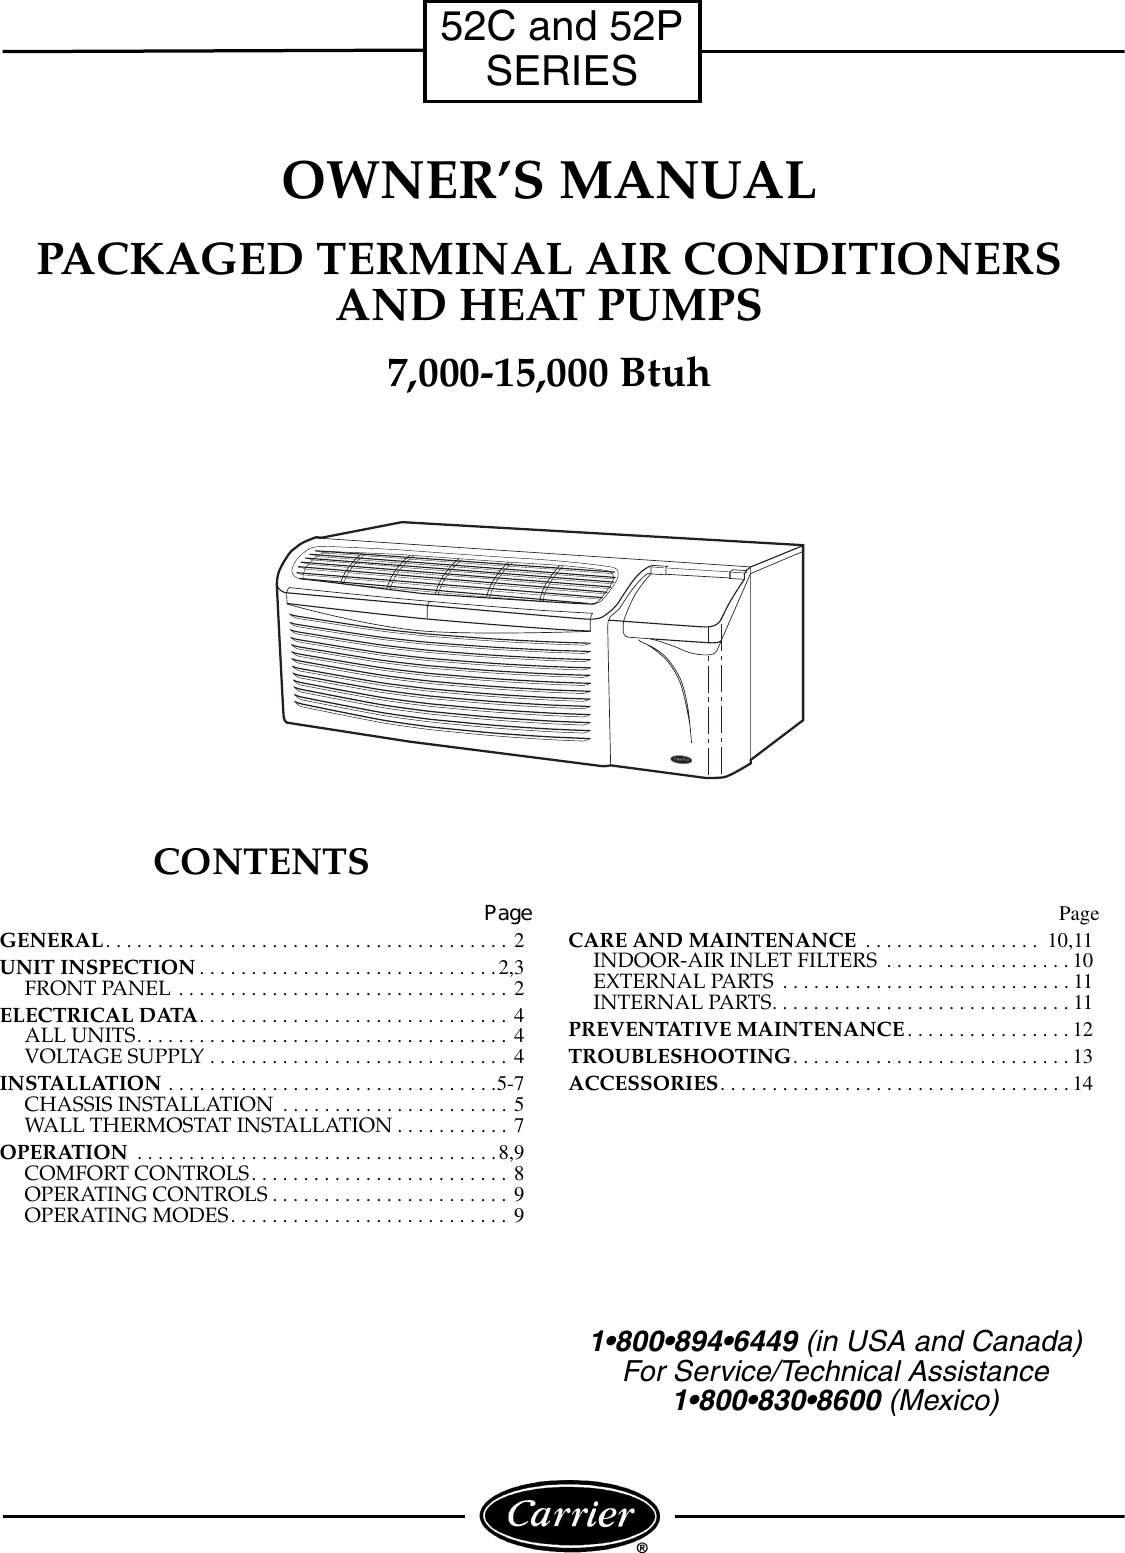 Carrier Access 52p Users Manual 52c P 1so Thermostat Wiring For Ac Unit